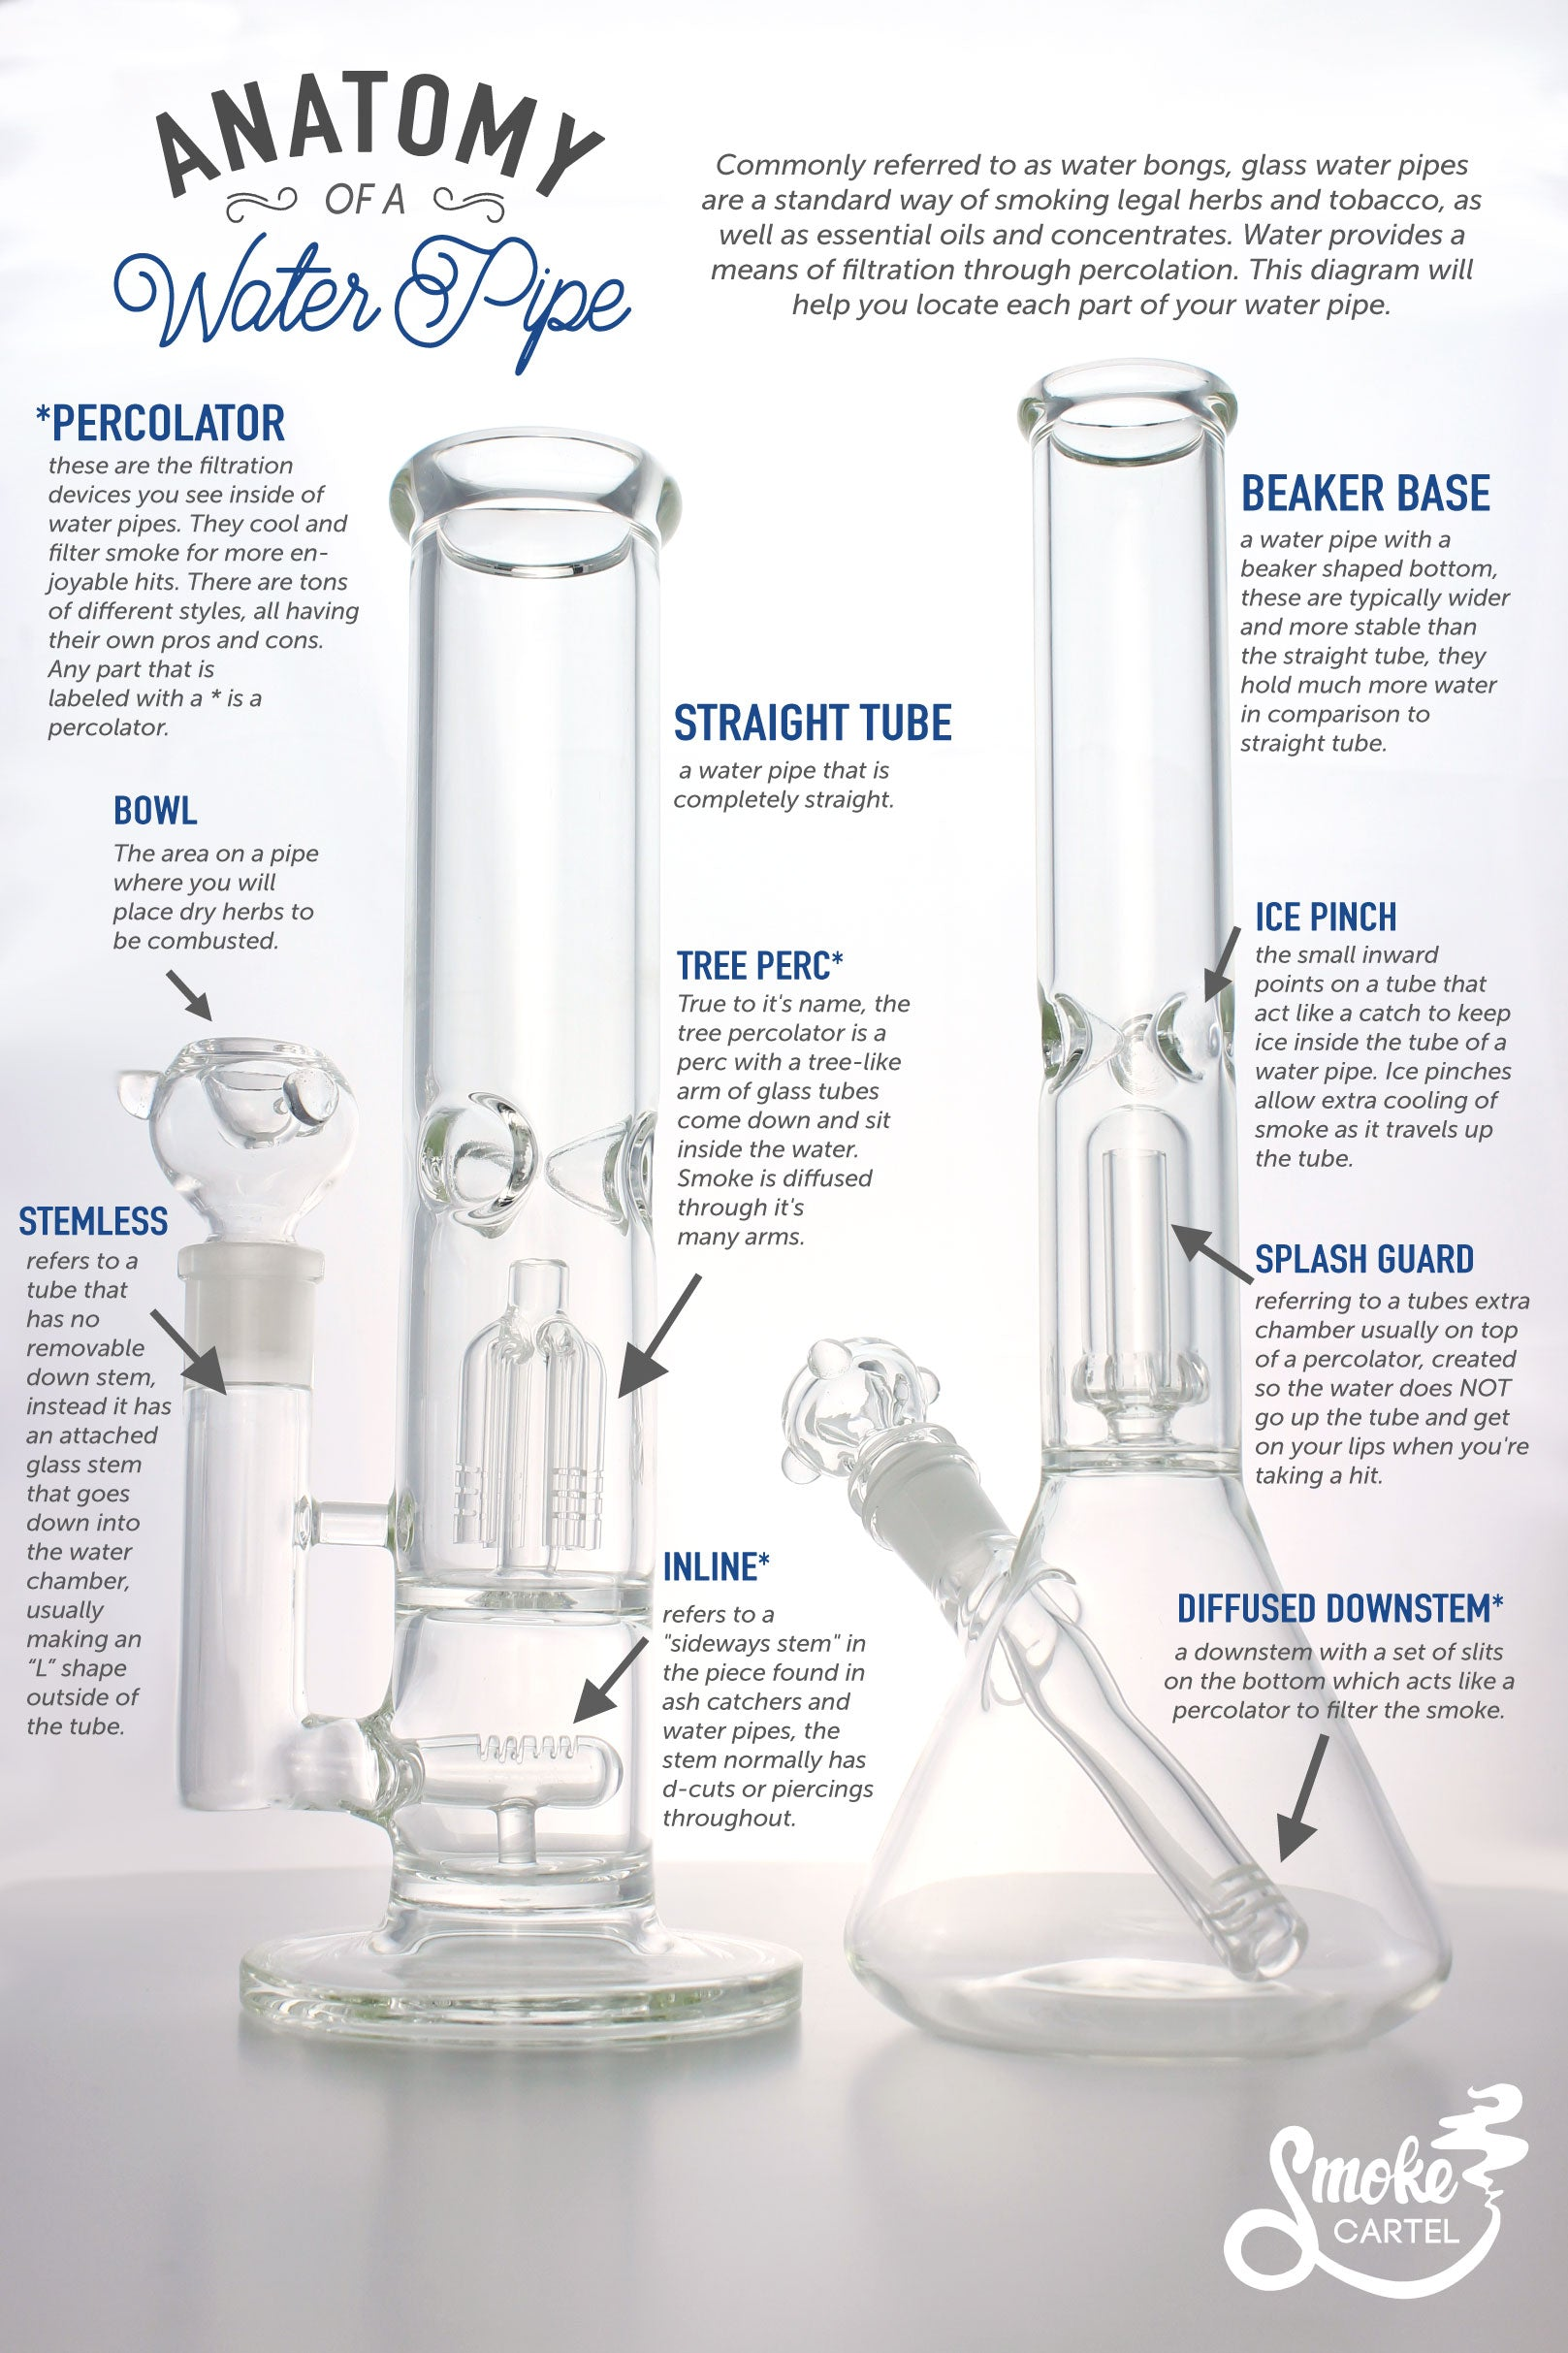 Anatomy of a Water Pipe Infographic